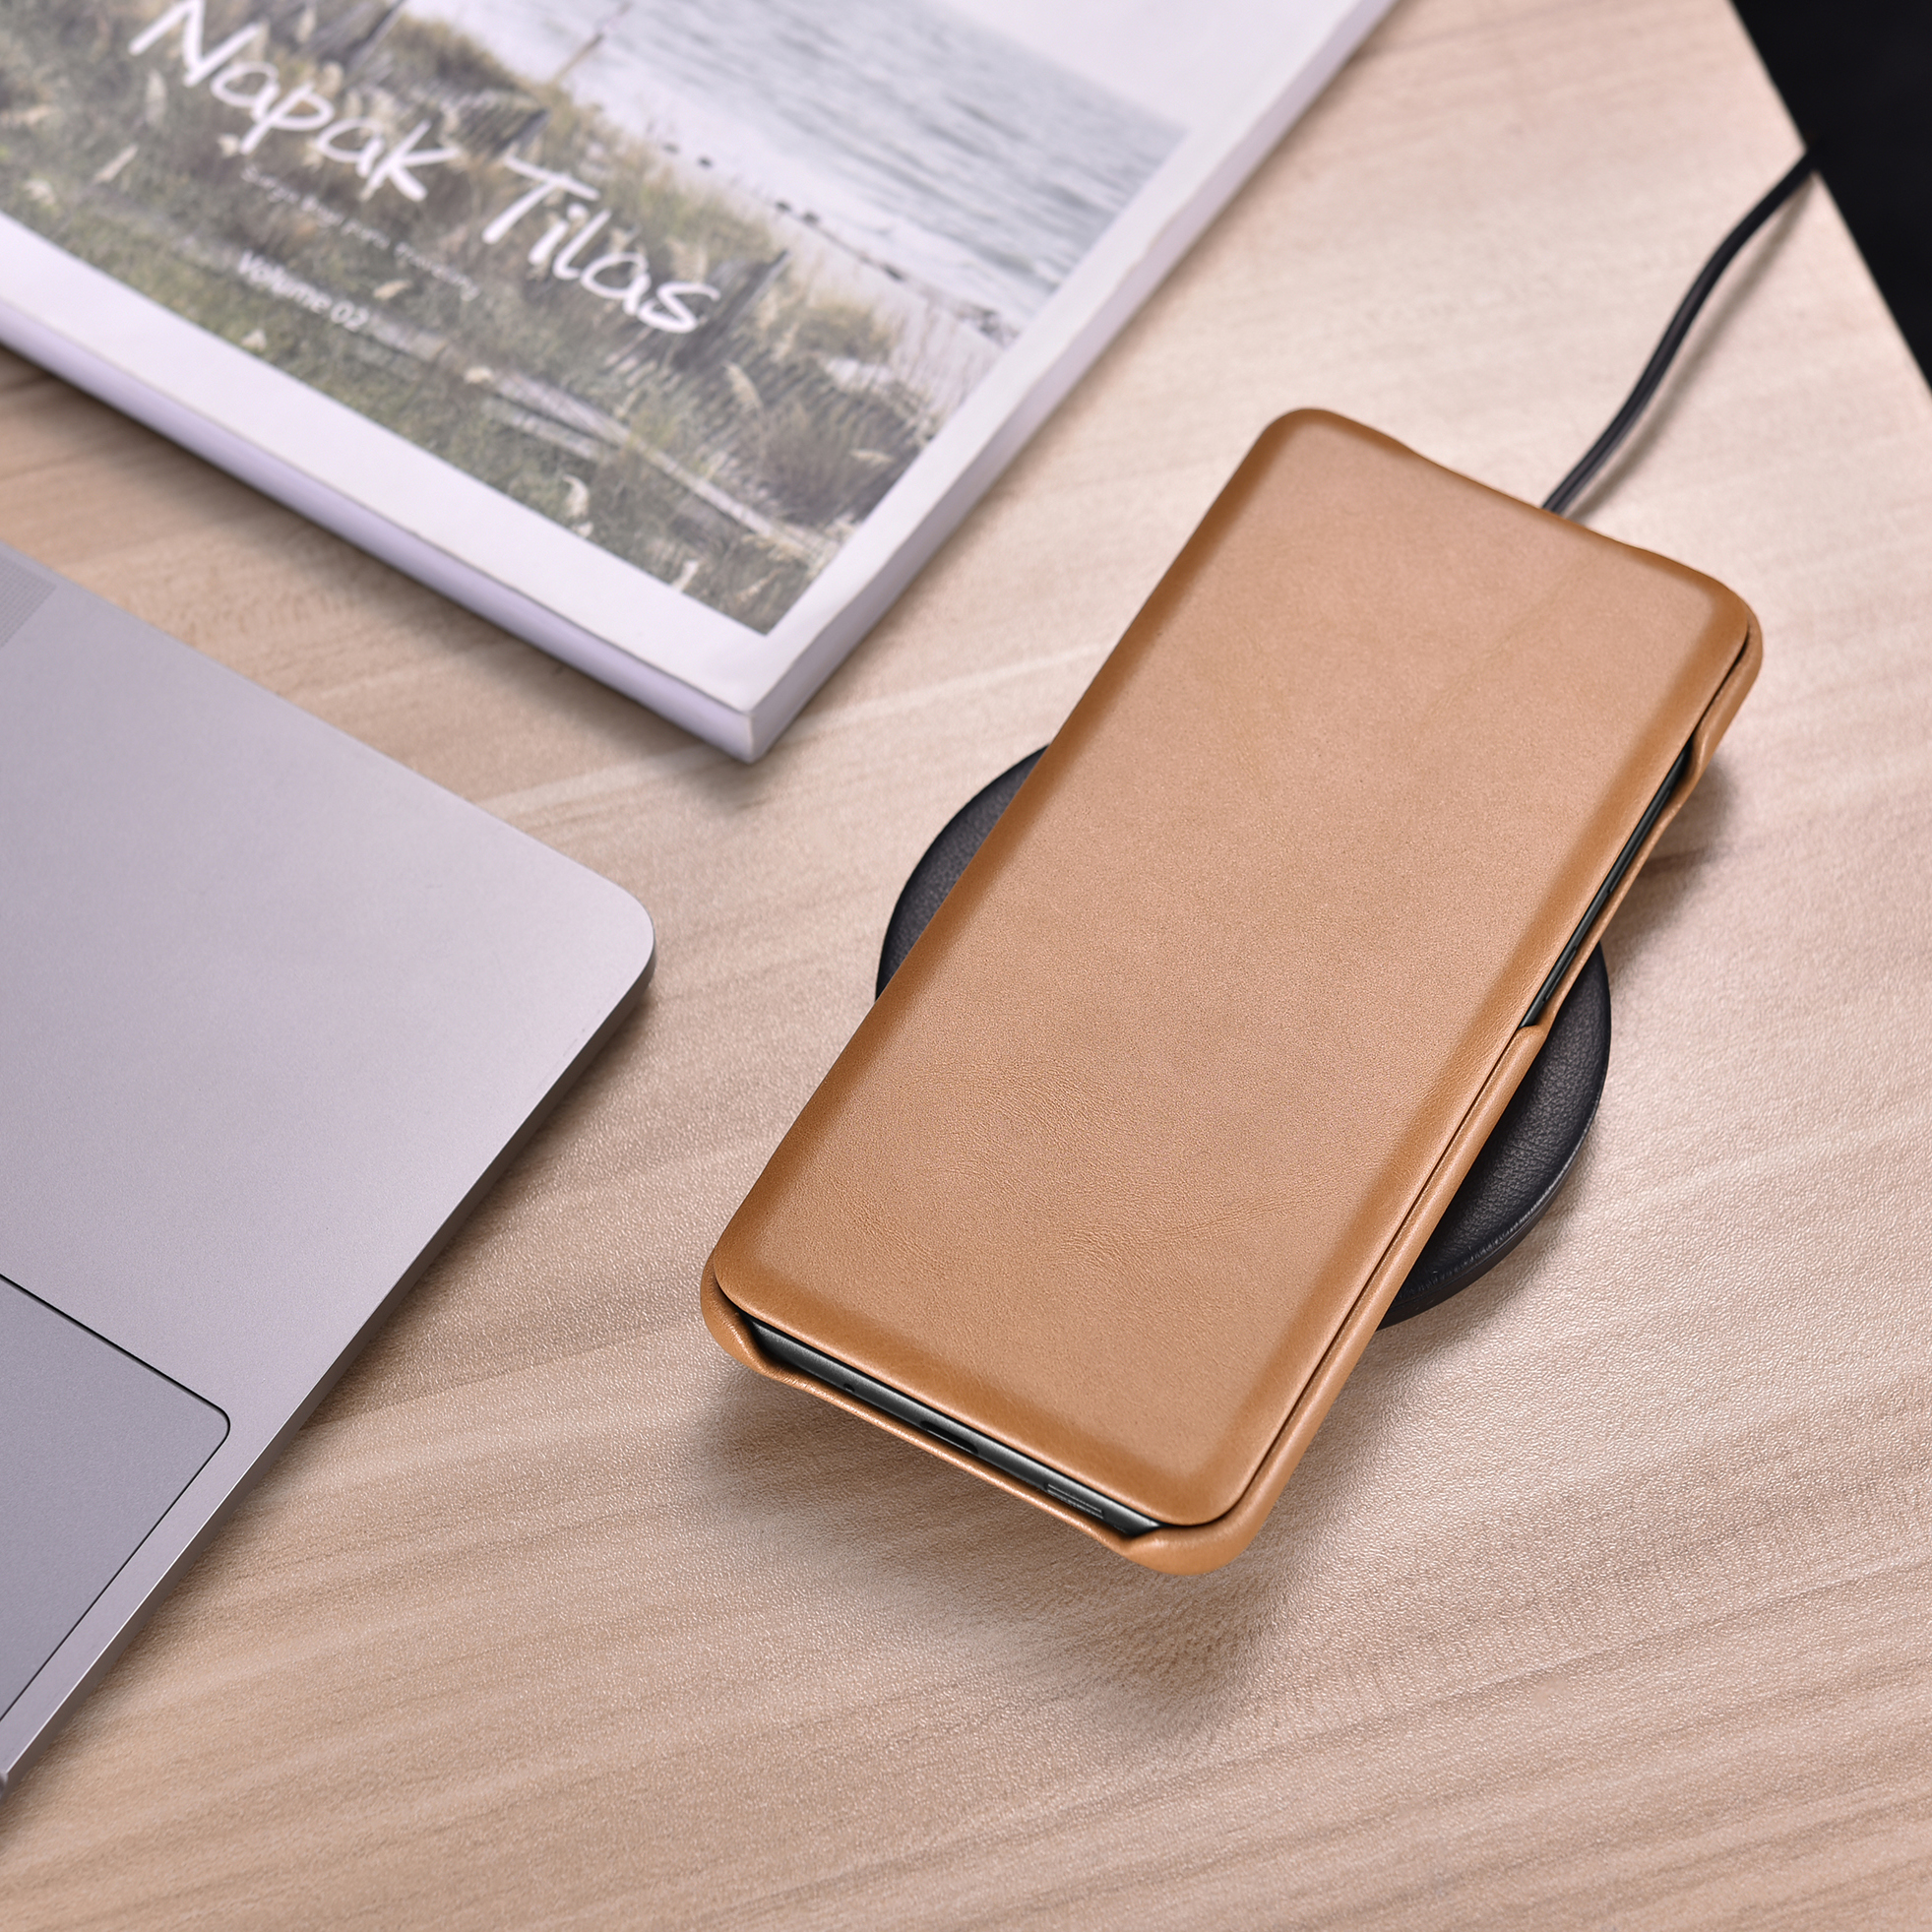 ICARER Luxury Flip Cover Case for Samsung Galaxy S20 S20Ultra S20 Plus Retro Handmade Genuine Leather Phone Case Protection